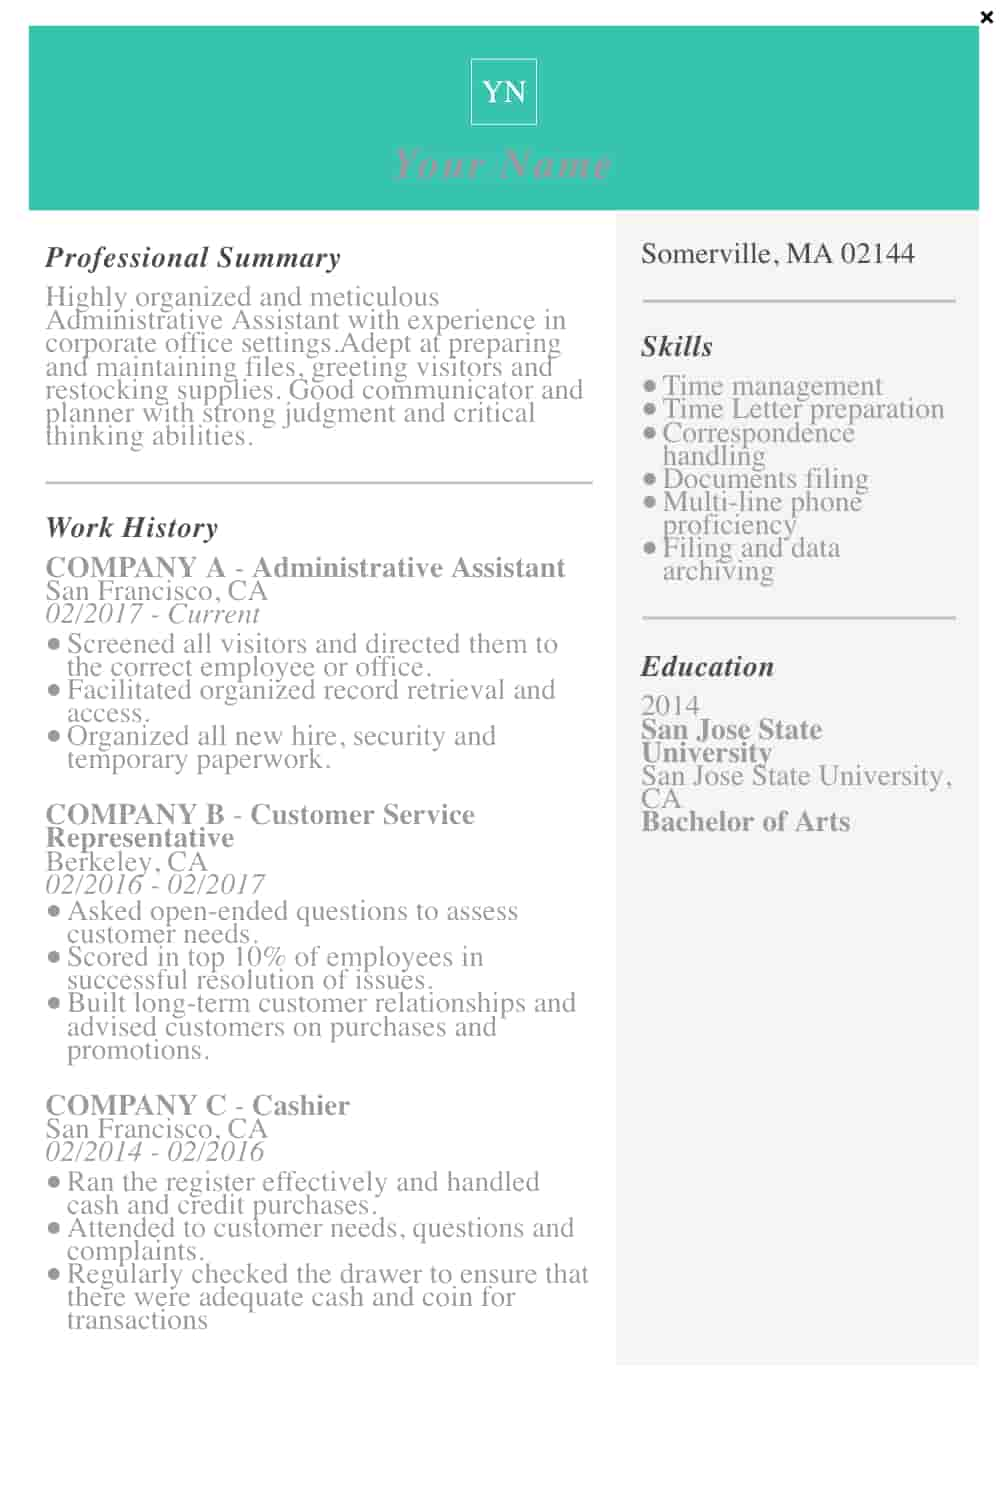 free resume templates for microsoft word to make your own best document format screen Resume Best Resume Document Format